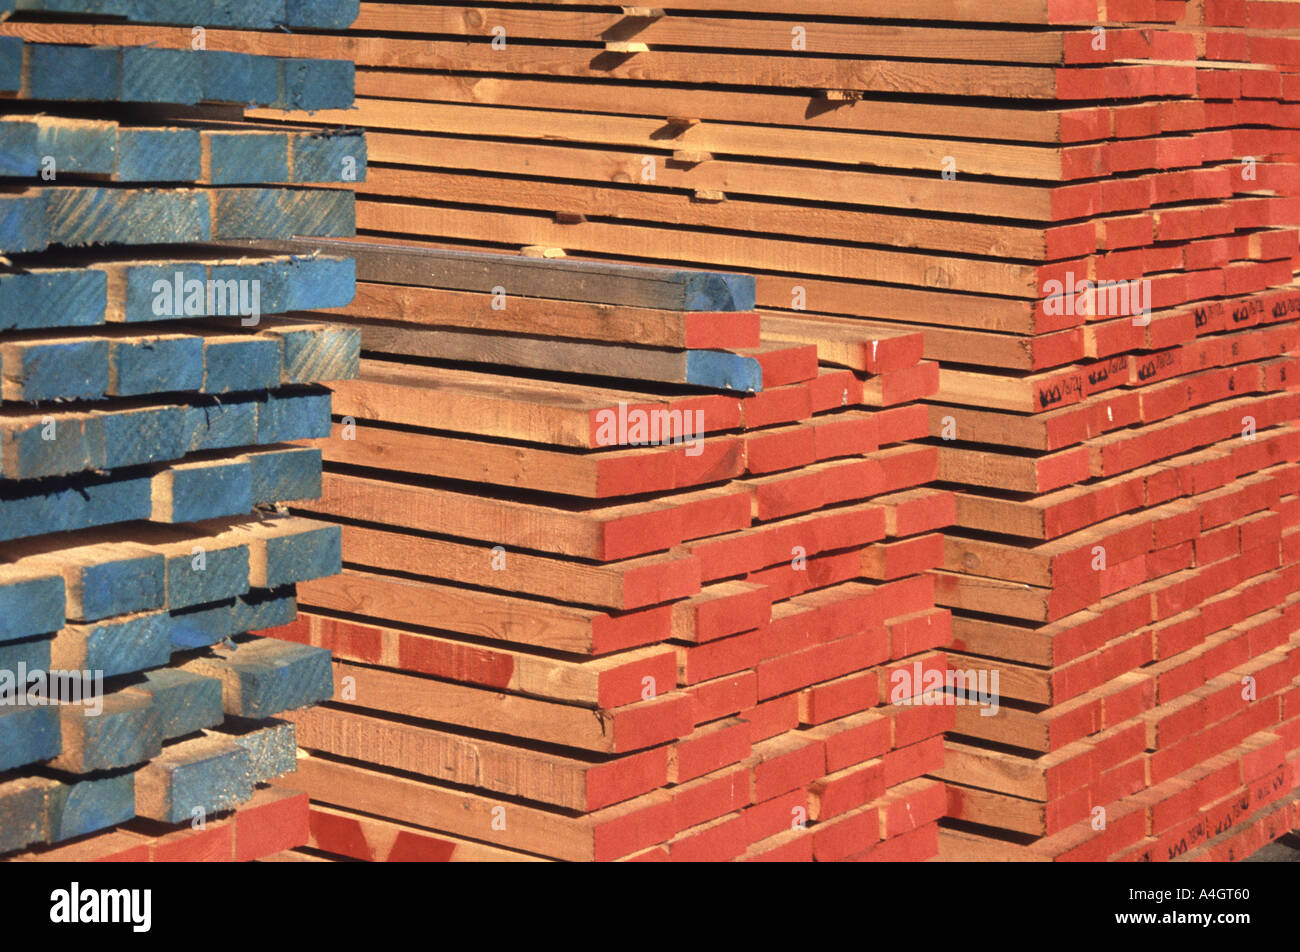 Stacks of sawn softwood construction timber in builders merchants yard with colour coded markings on ends - Stock Image